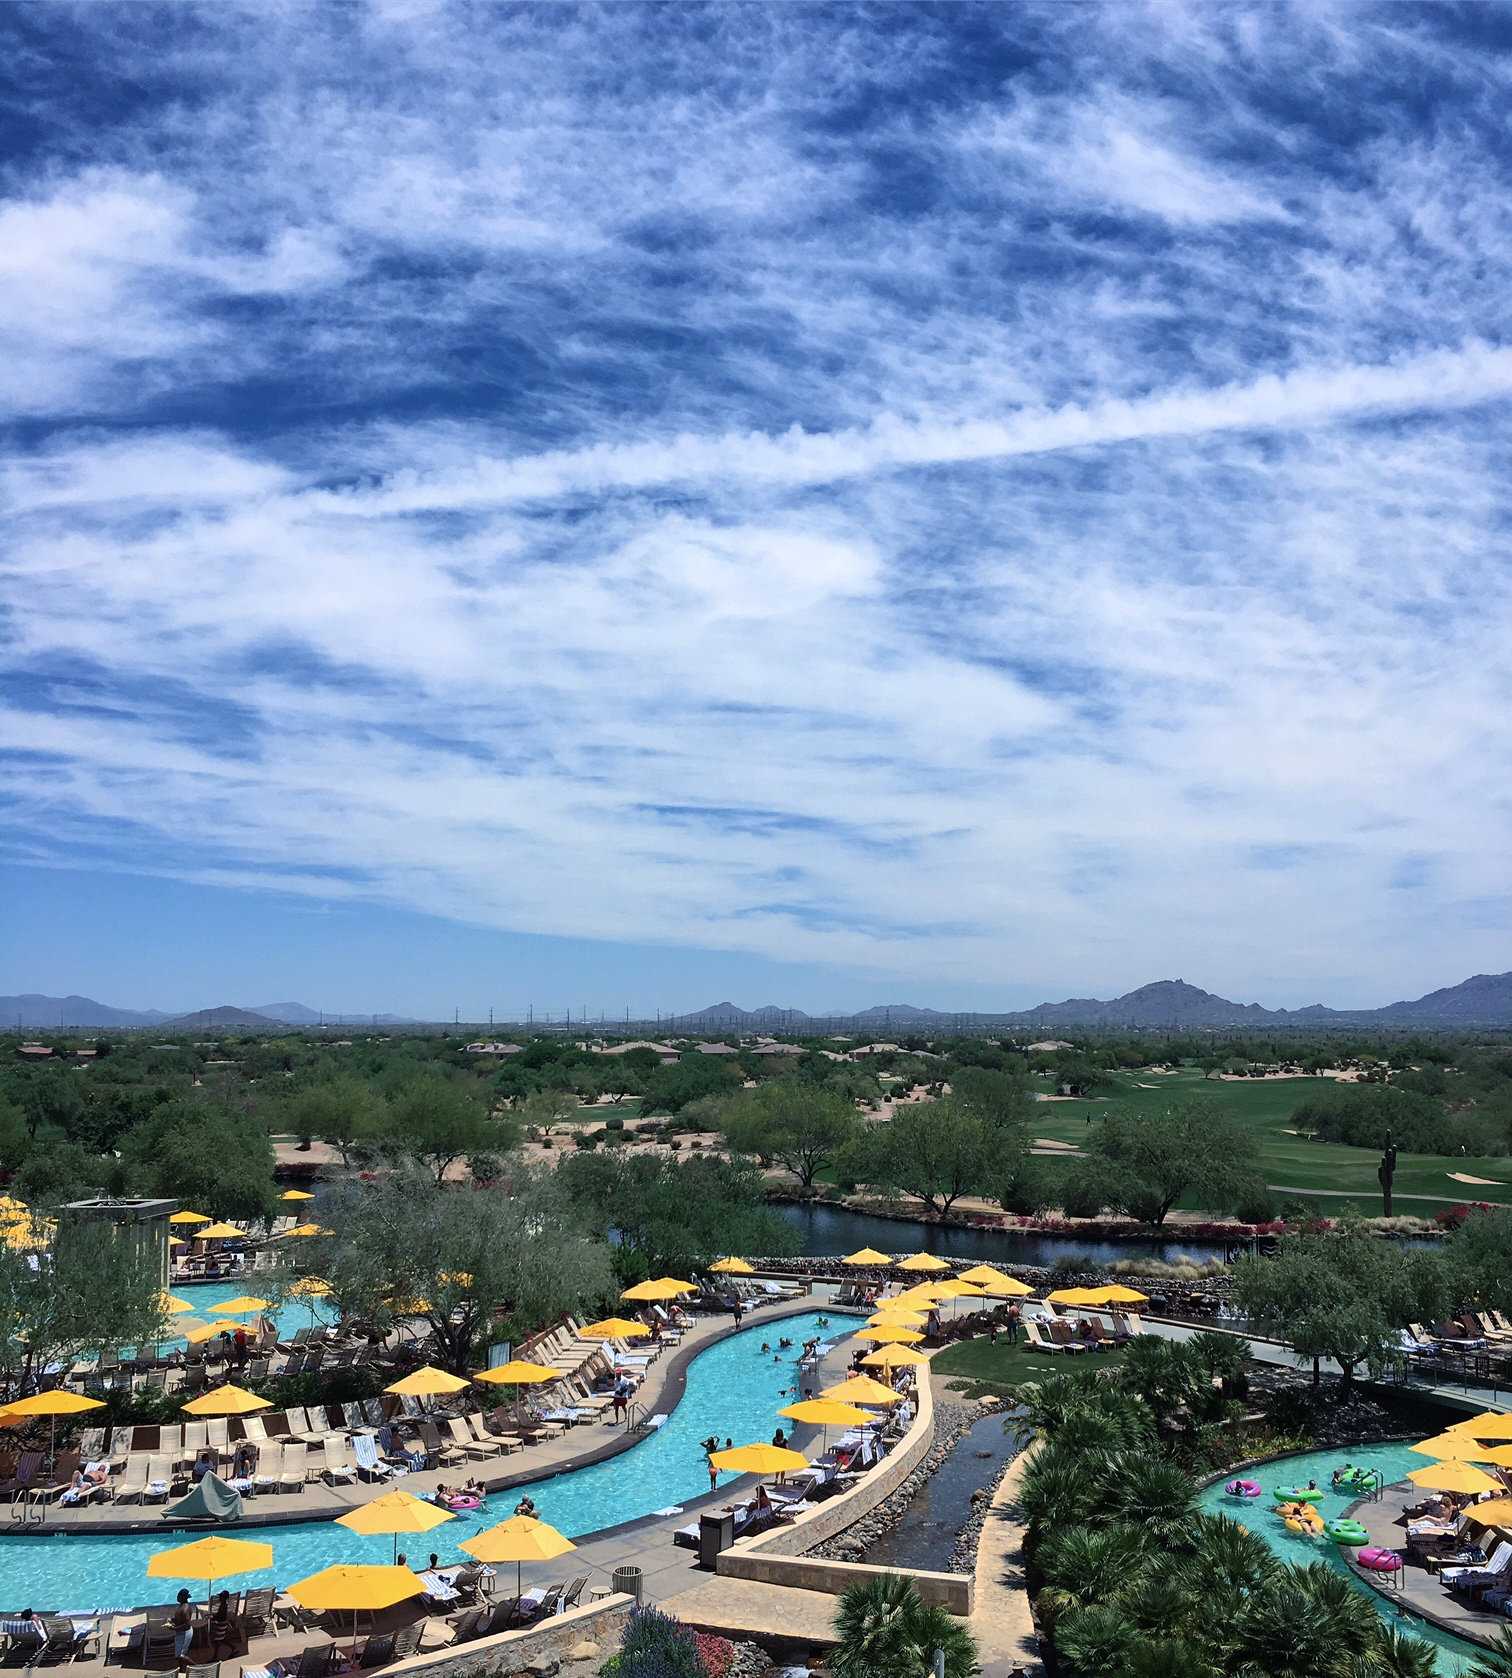 Anniversary STAYcation - Phoenix, Arizona - JW Marriott Phoenix Desert Ridge Resort & Spa